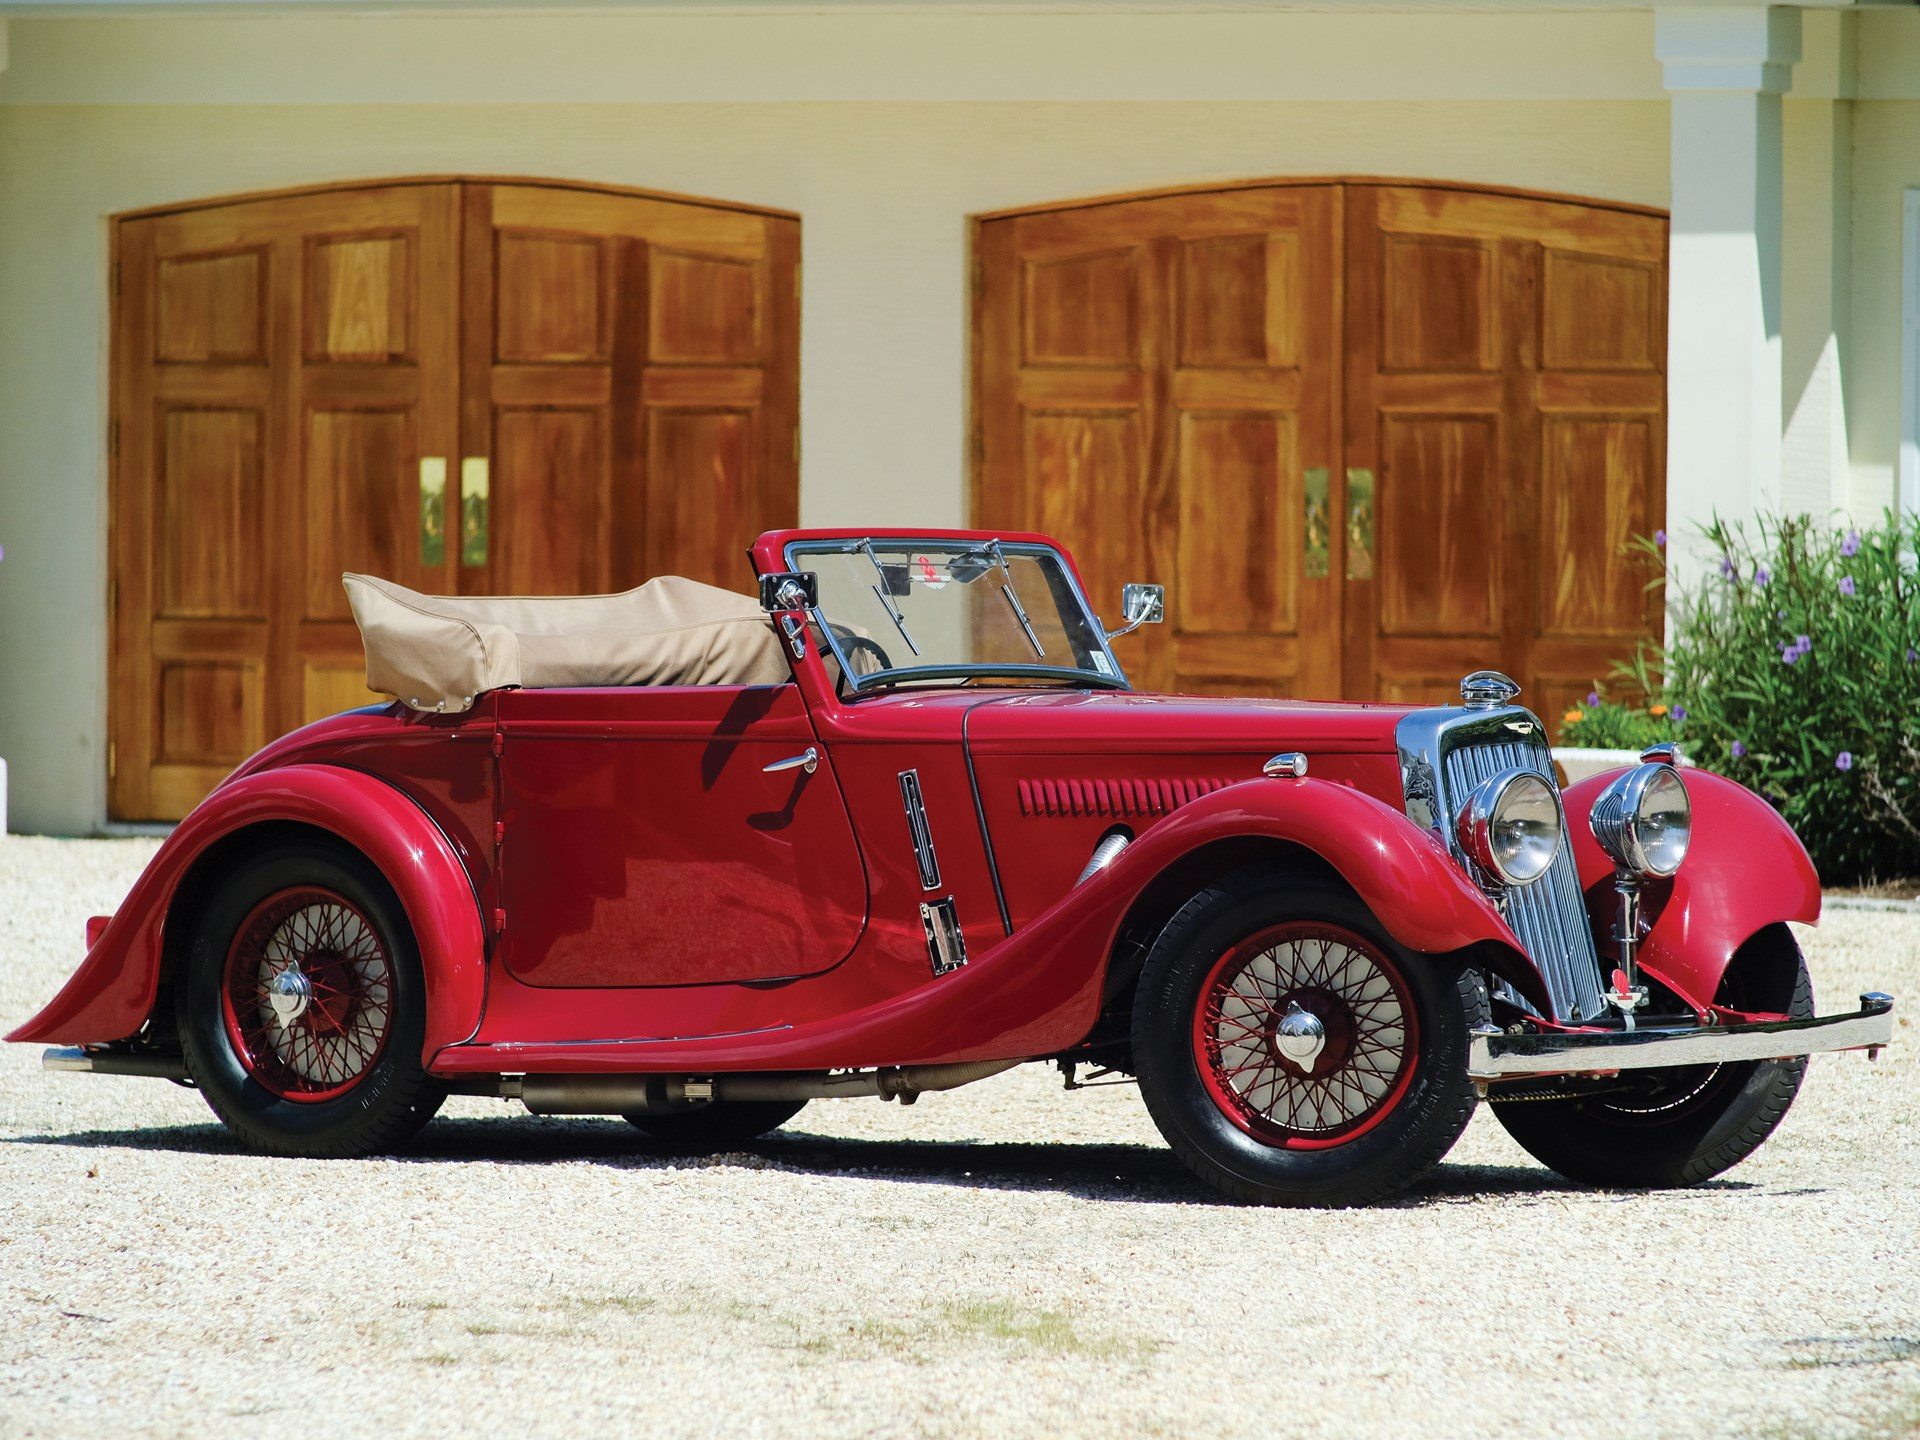 rm sotheby's - 1937 aston martin 15/98 short-chassis drophead coupe